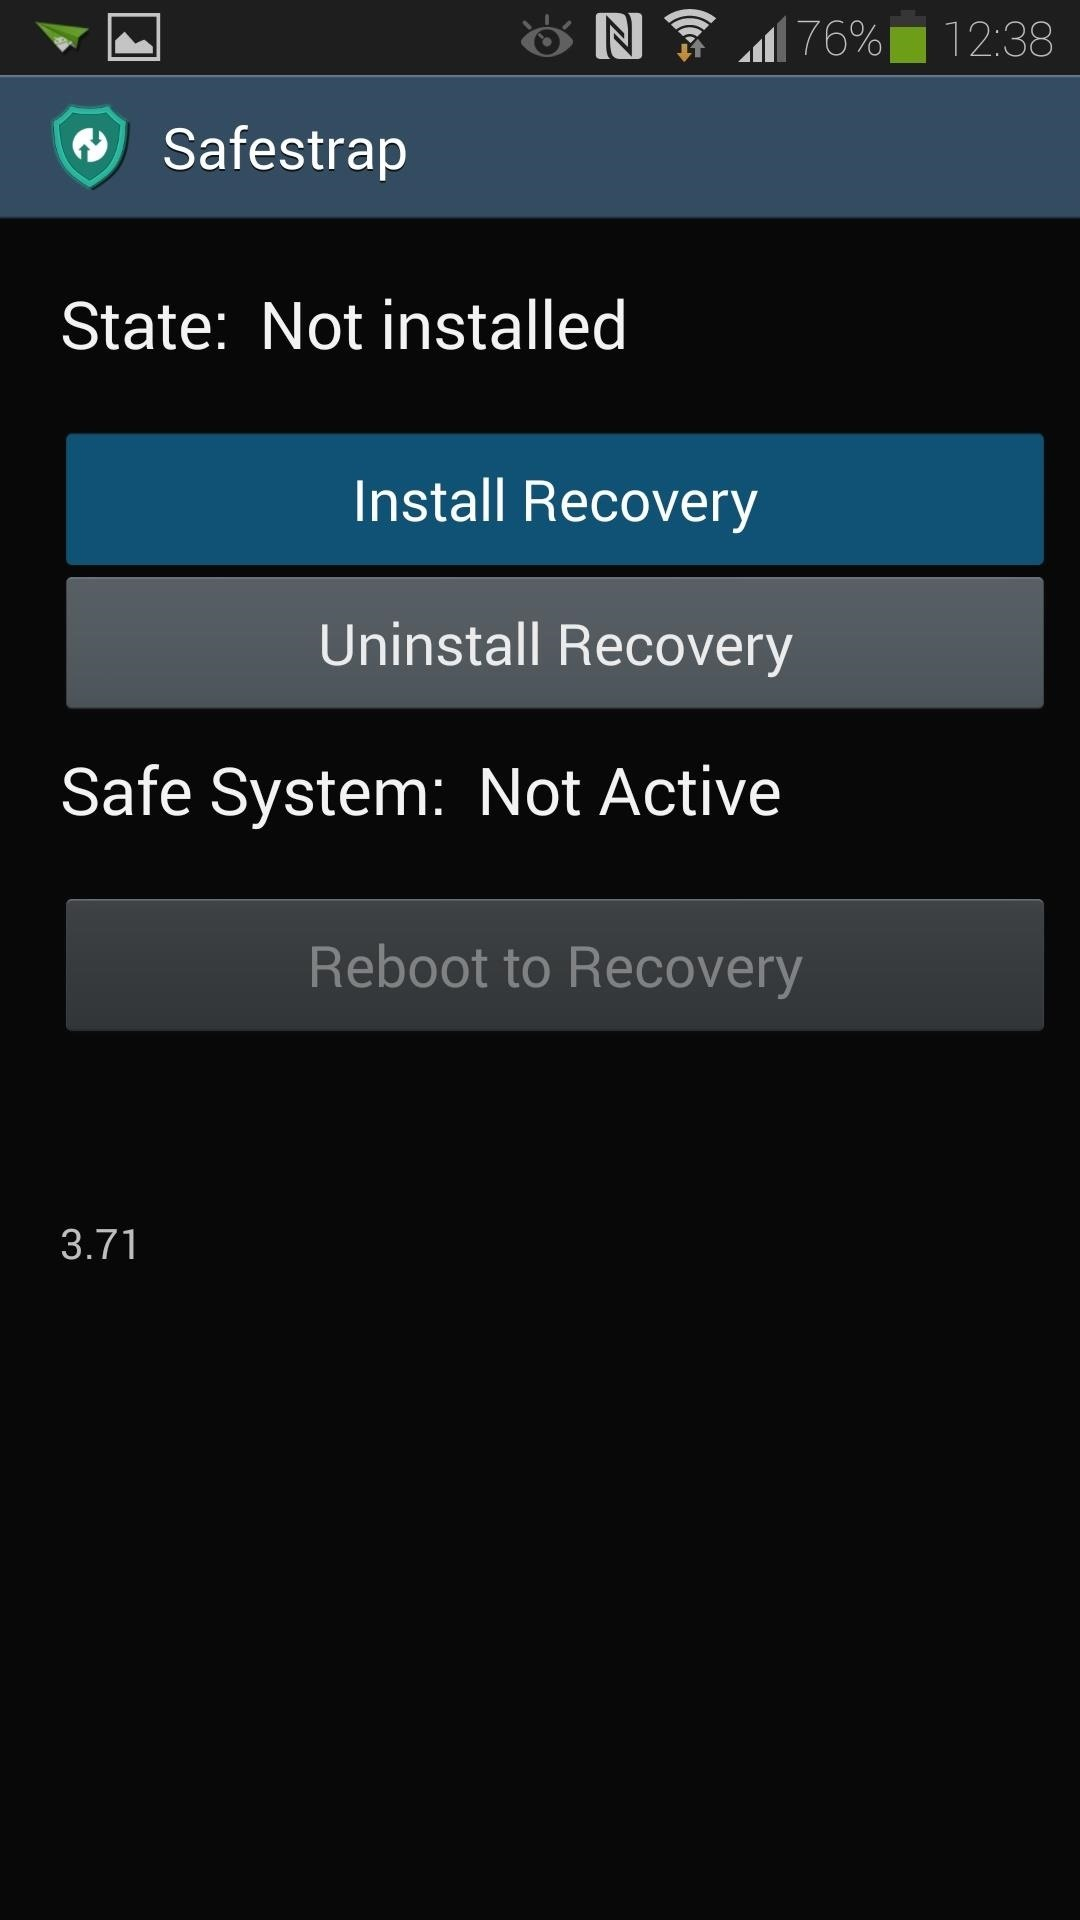 How to Install a Custom Recovery & New ROM on Your Bootloader-Locked Samsung Galaxy S4